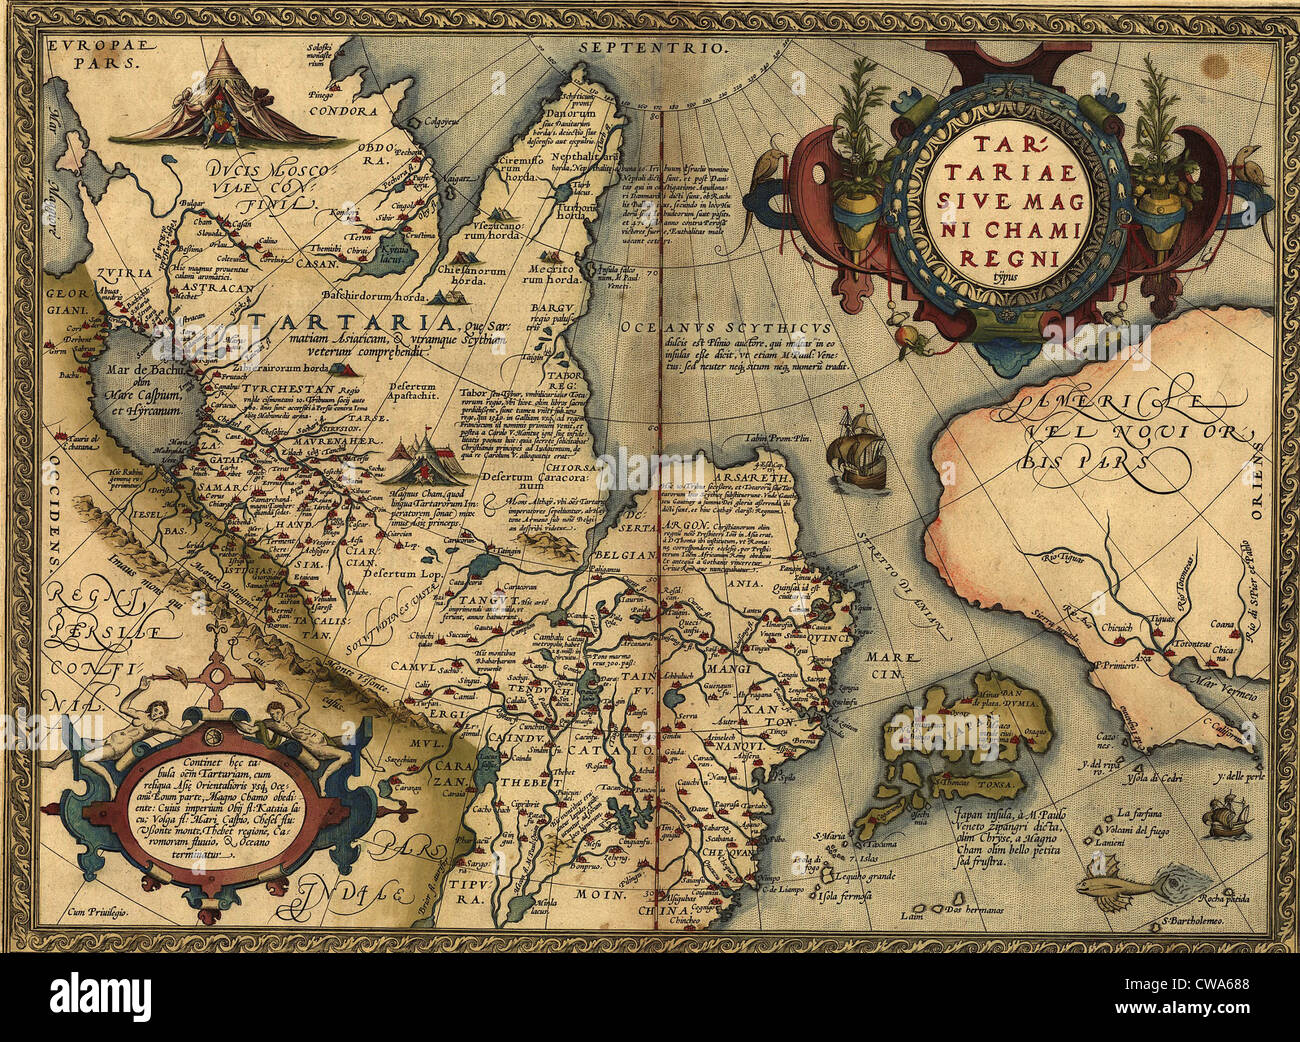 1570 map of tartaria spanning all of northern asia from the ural mountains to the pacific ocean from abraham ortelius